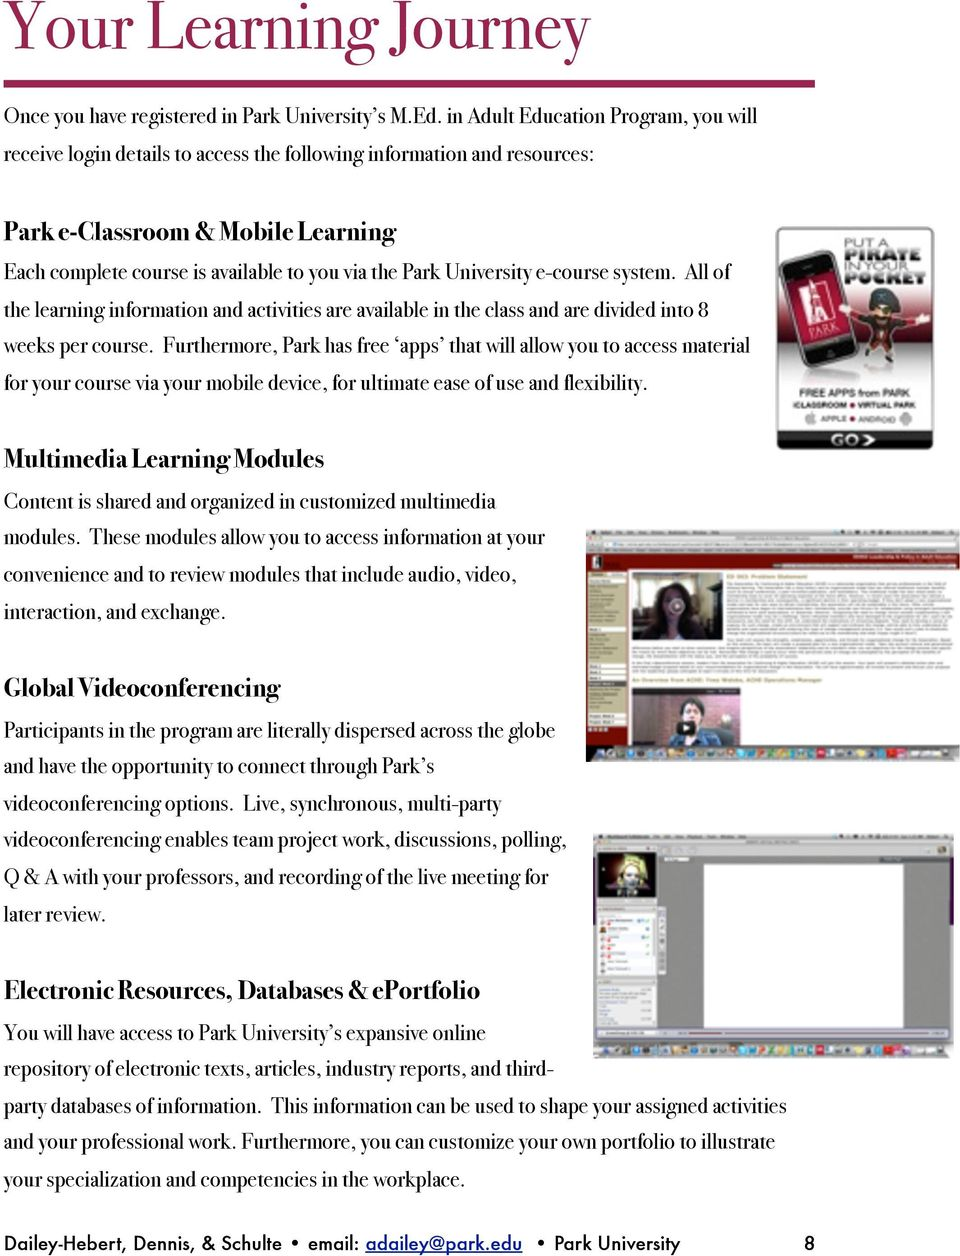 University e-course system. All of the learning information and activities are available in the class and are divided into 8 weeks per course.